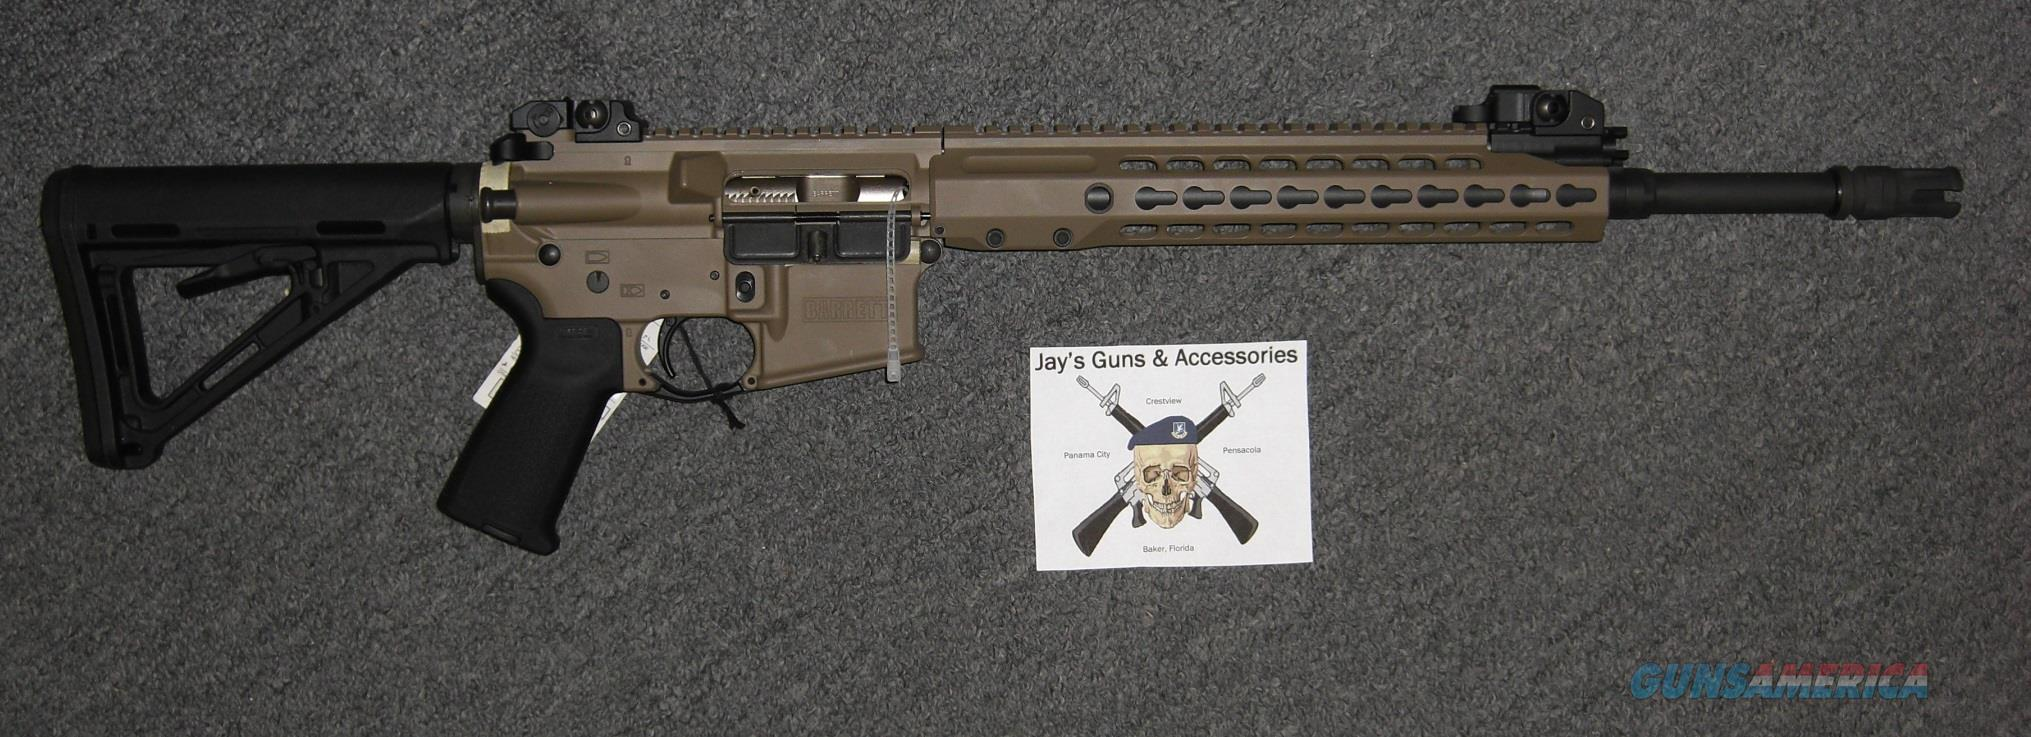 Barrett REC 7 Gen 2 w/FDE Finish in 6.8 spc  Guns > Rifles > Barrett Rifles